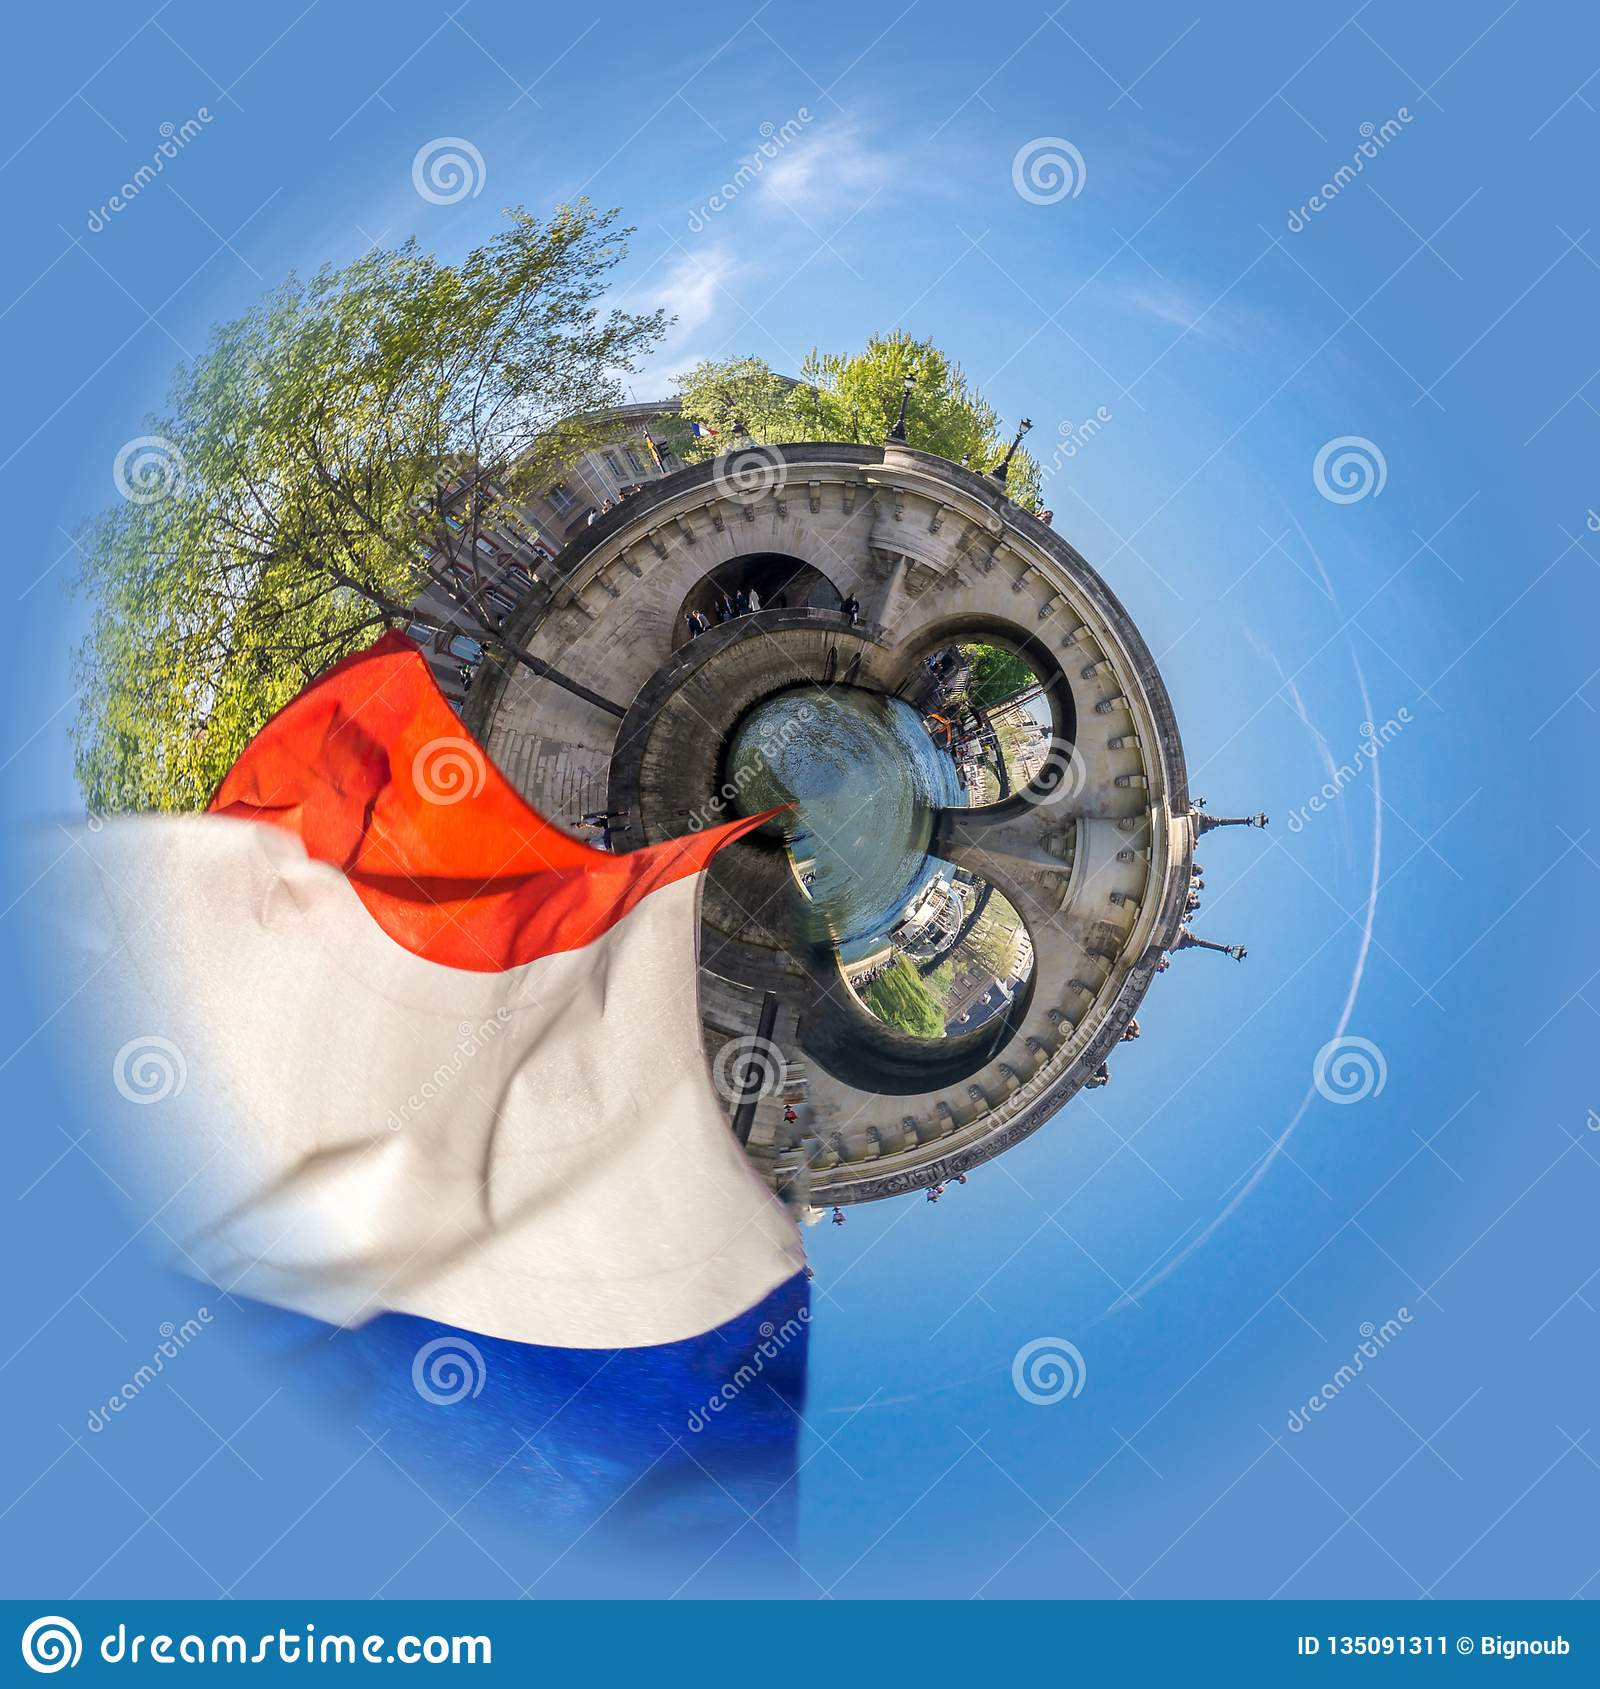 Little planet view of Cruising on a peniche boat in Paris in spring, with a bridge and french flag in the foreground